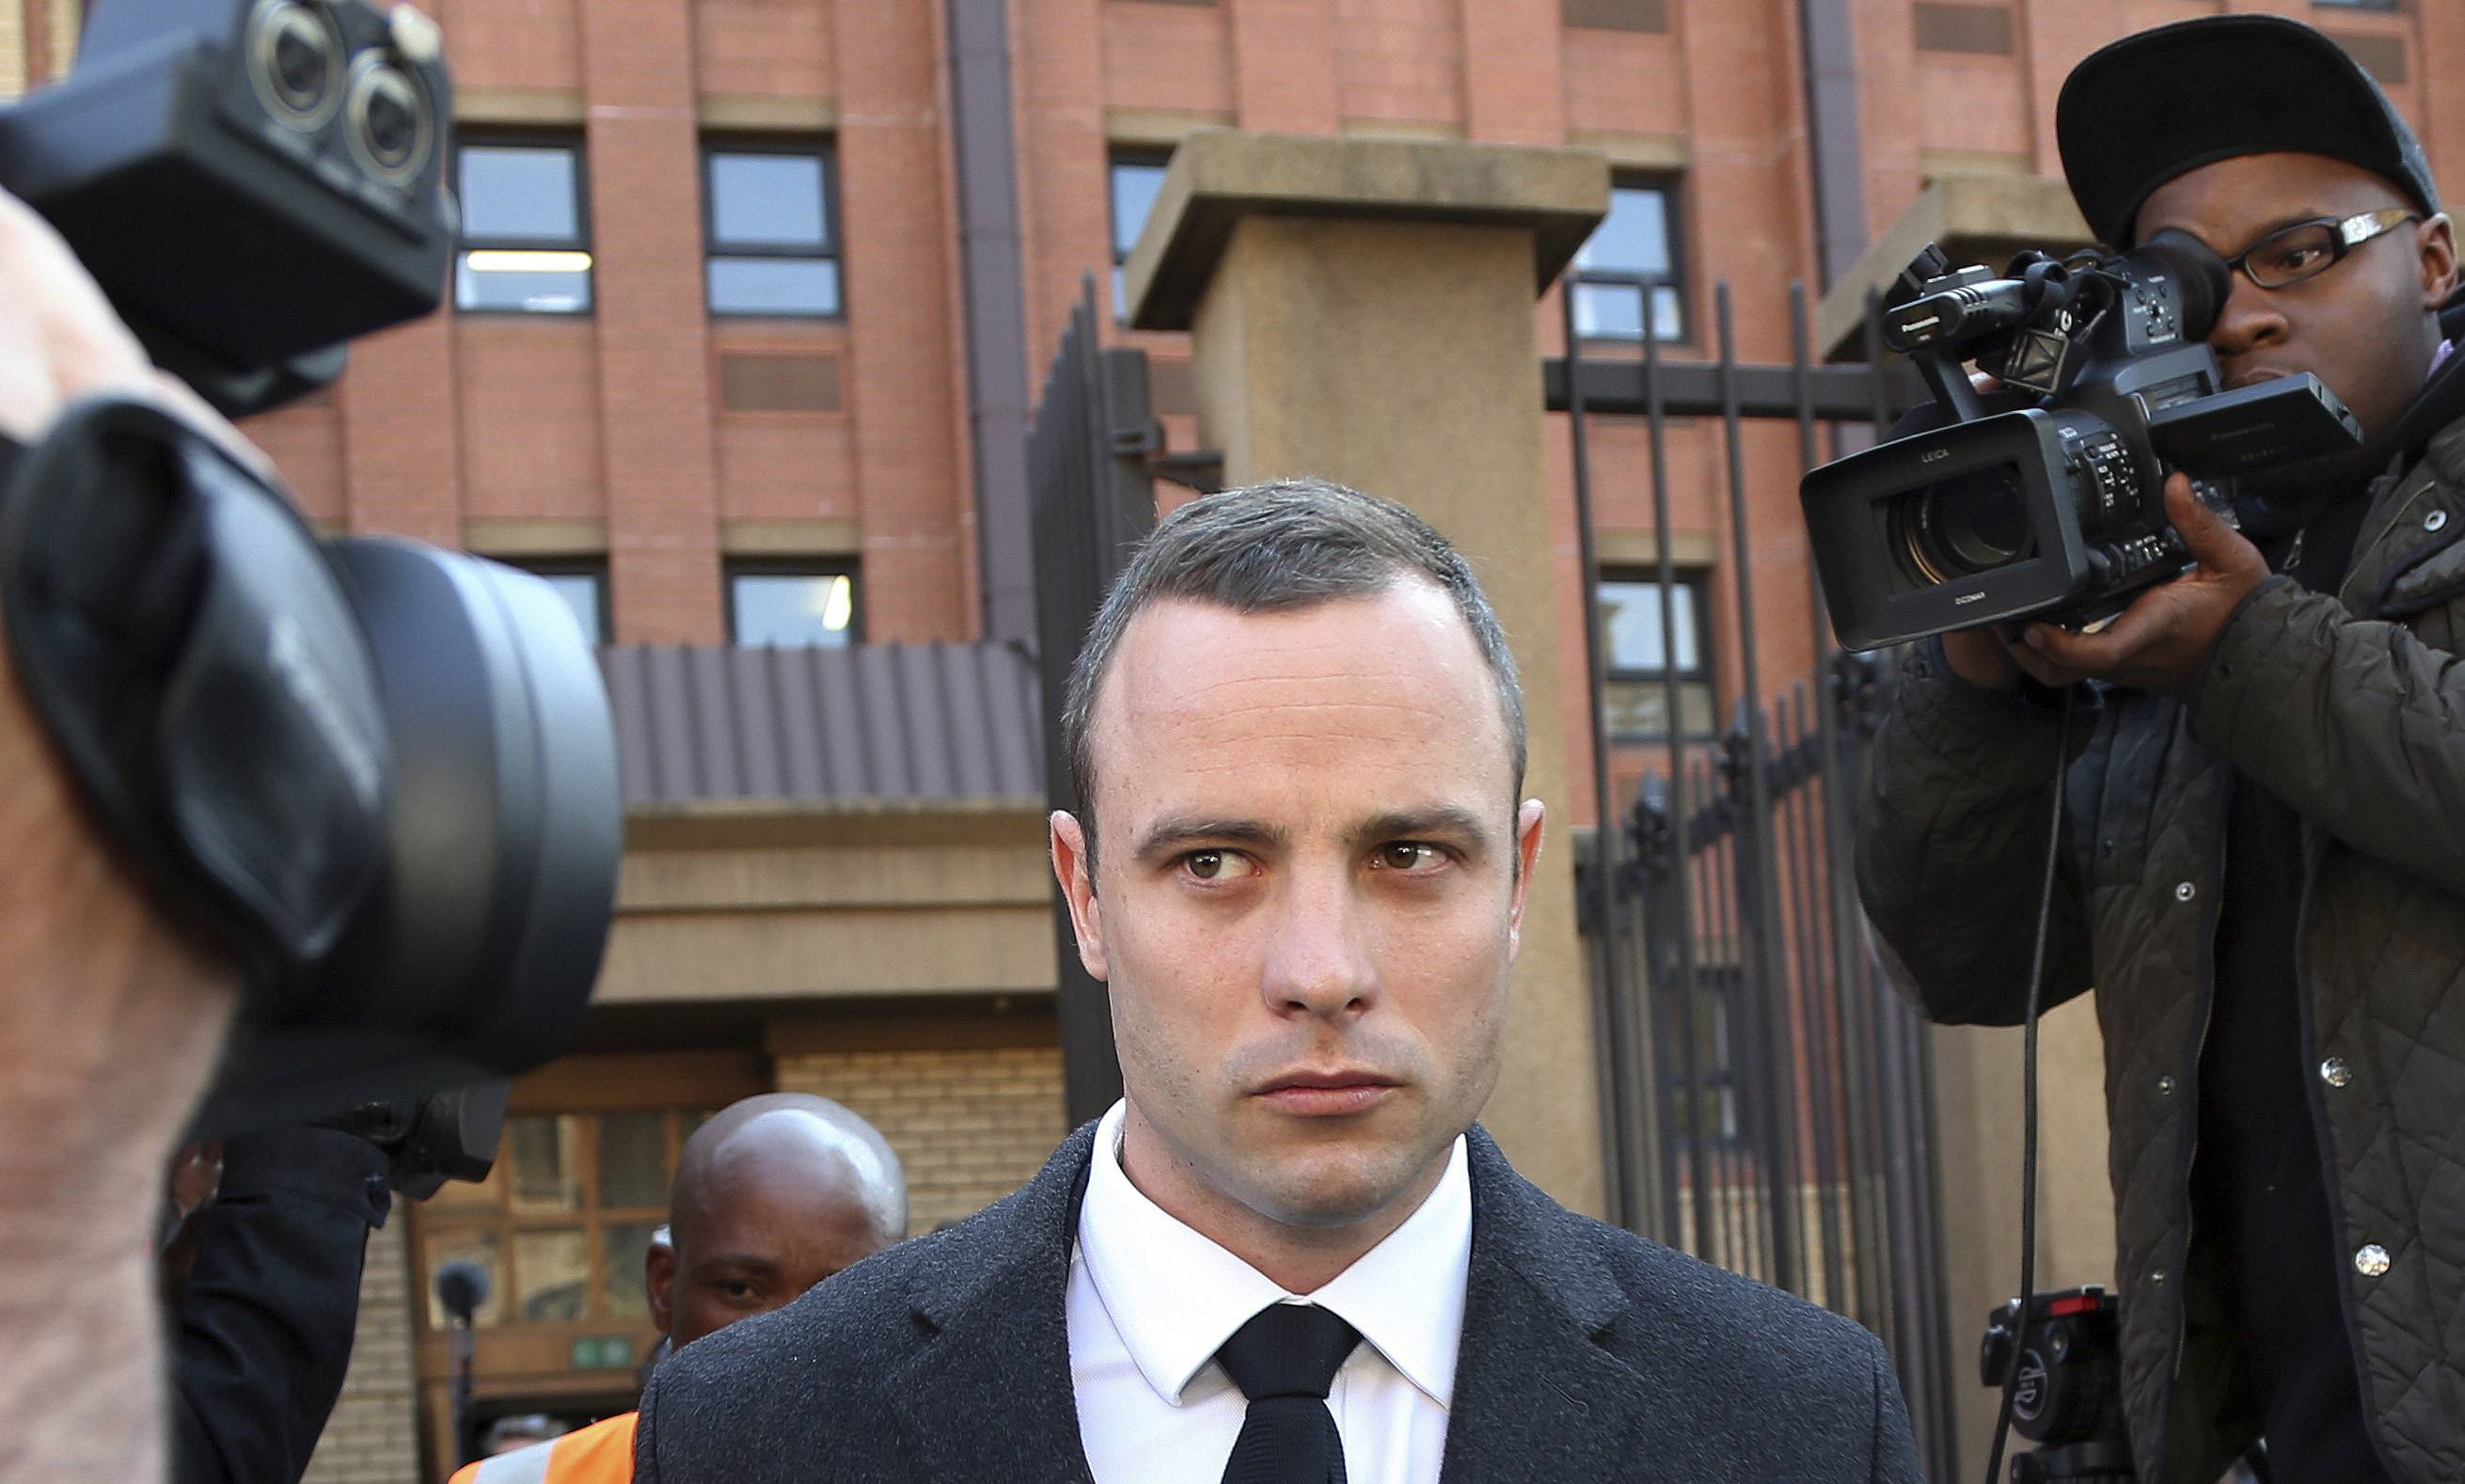 Oscar Pistorius, seen here leaving court May 20, will be back in court Monday when his murder trial resumes after one month during which mental health experts evaluated the athlete to determine if he has an anxiety disorder that could have influenced his actions on the night he killed girlfriend Reeva Steenkamp.